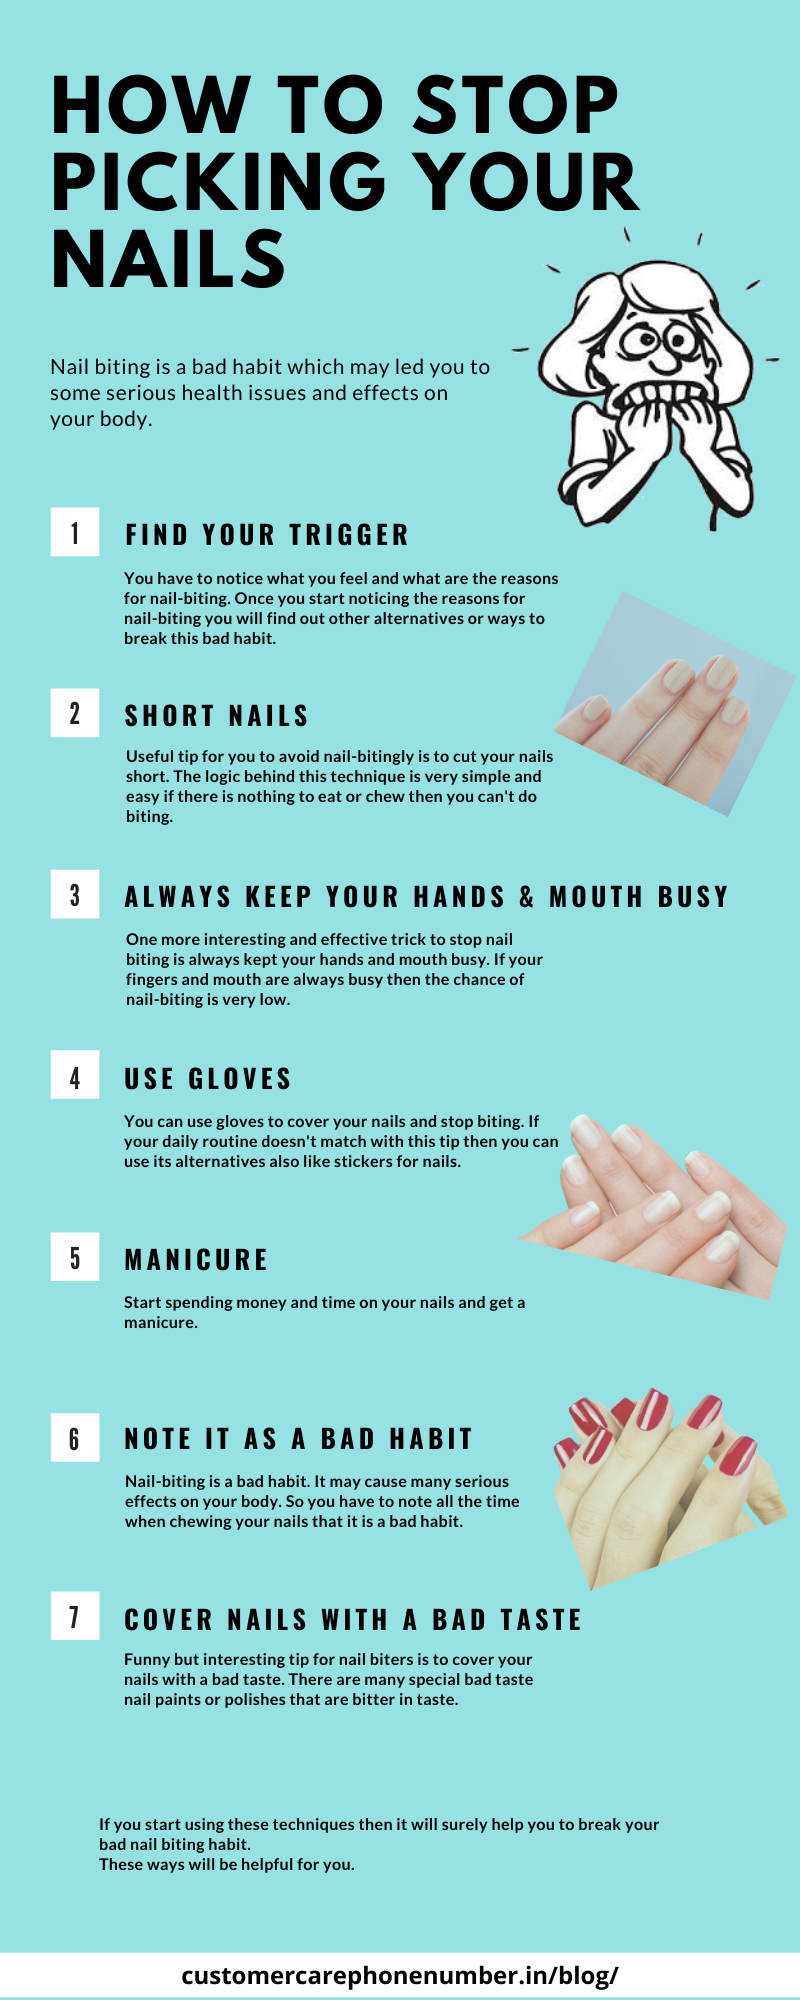 Nail Biting, How to Stop Picking Your Nails, How to Stop Nail Biting